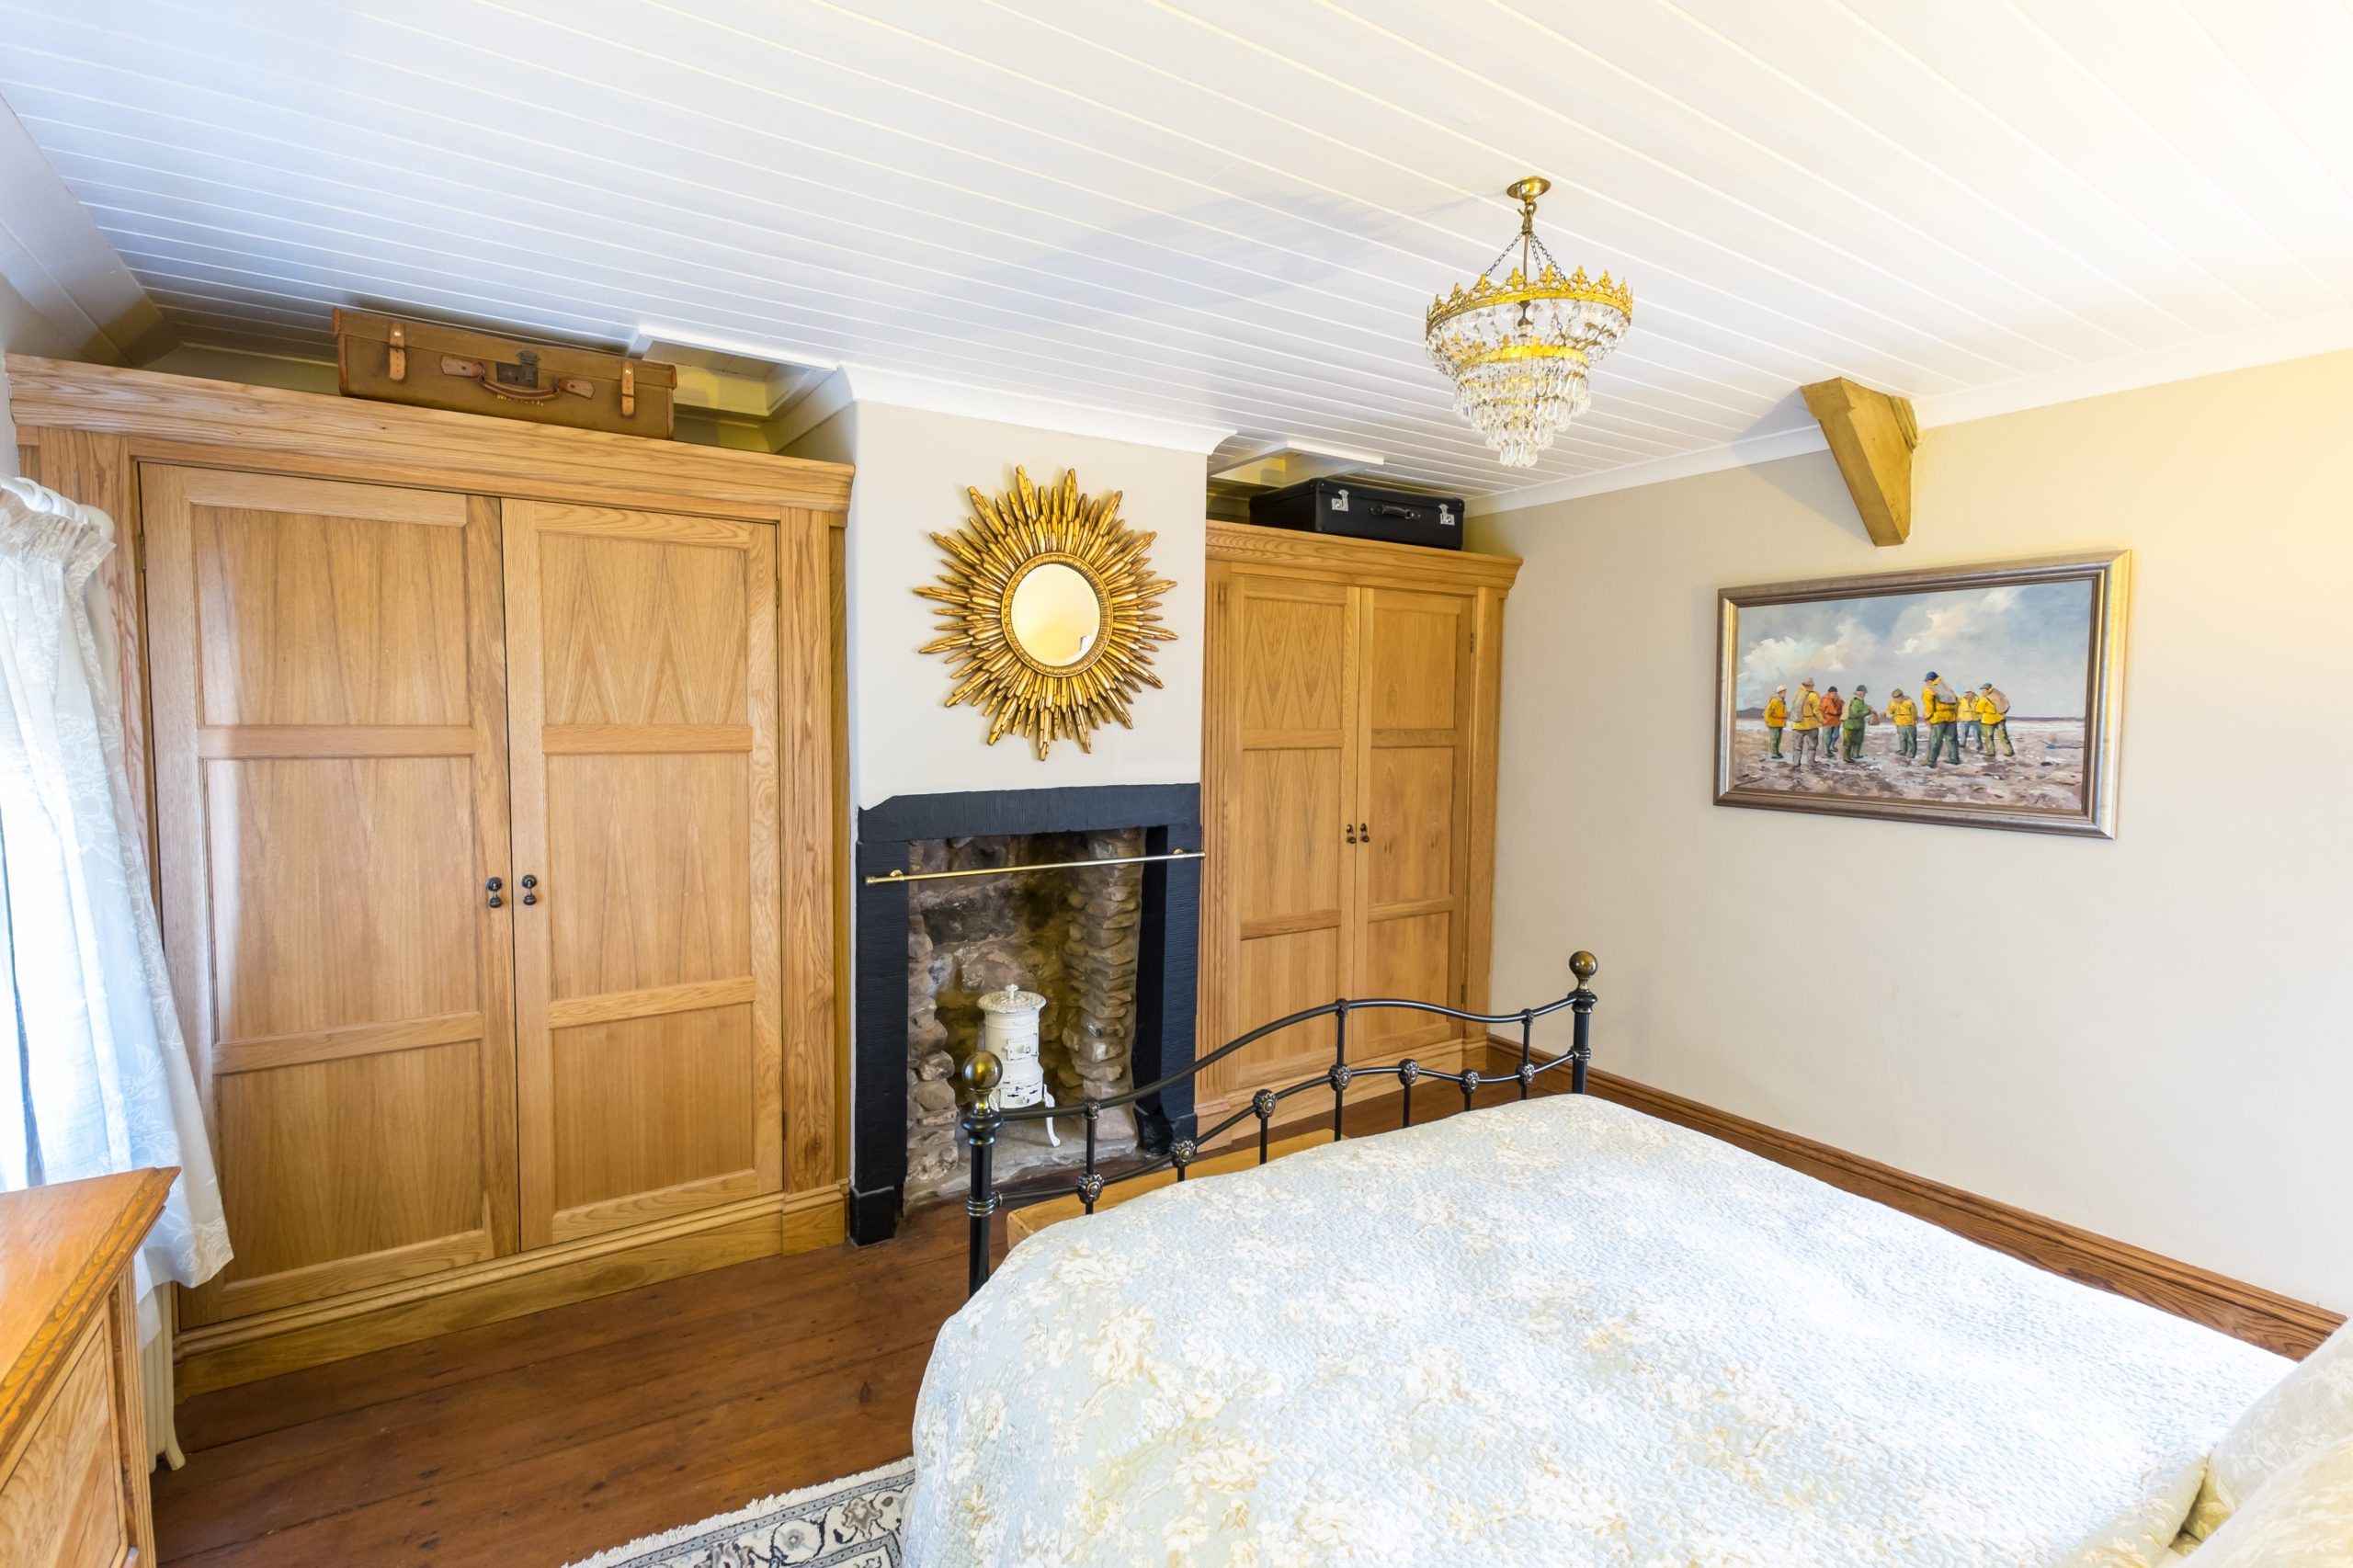 Oak wardrobes in Georgian cottage designed by Amelia Wilson